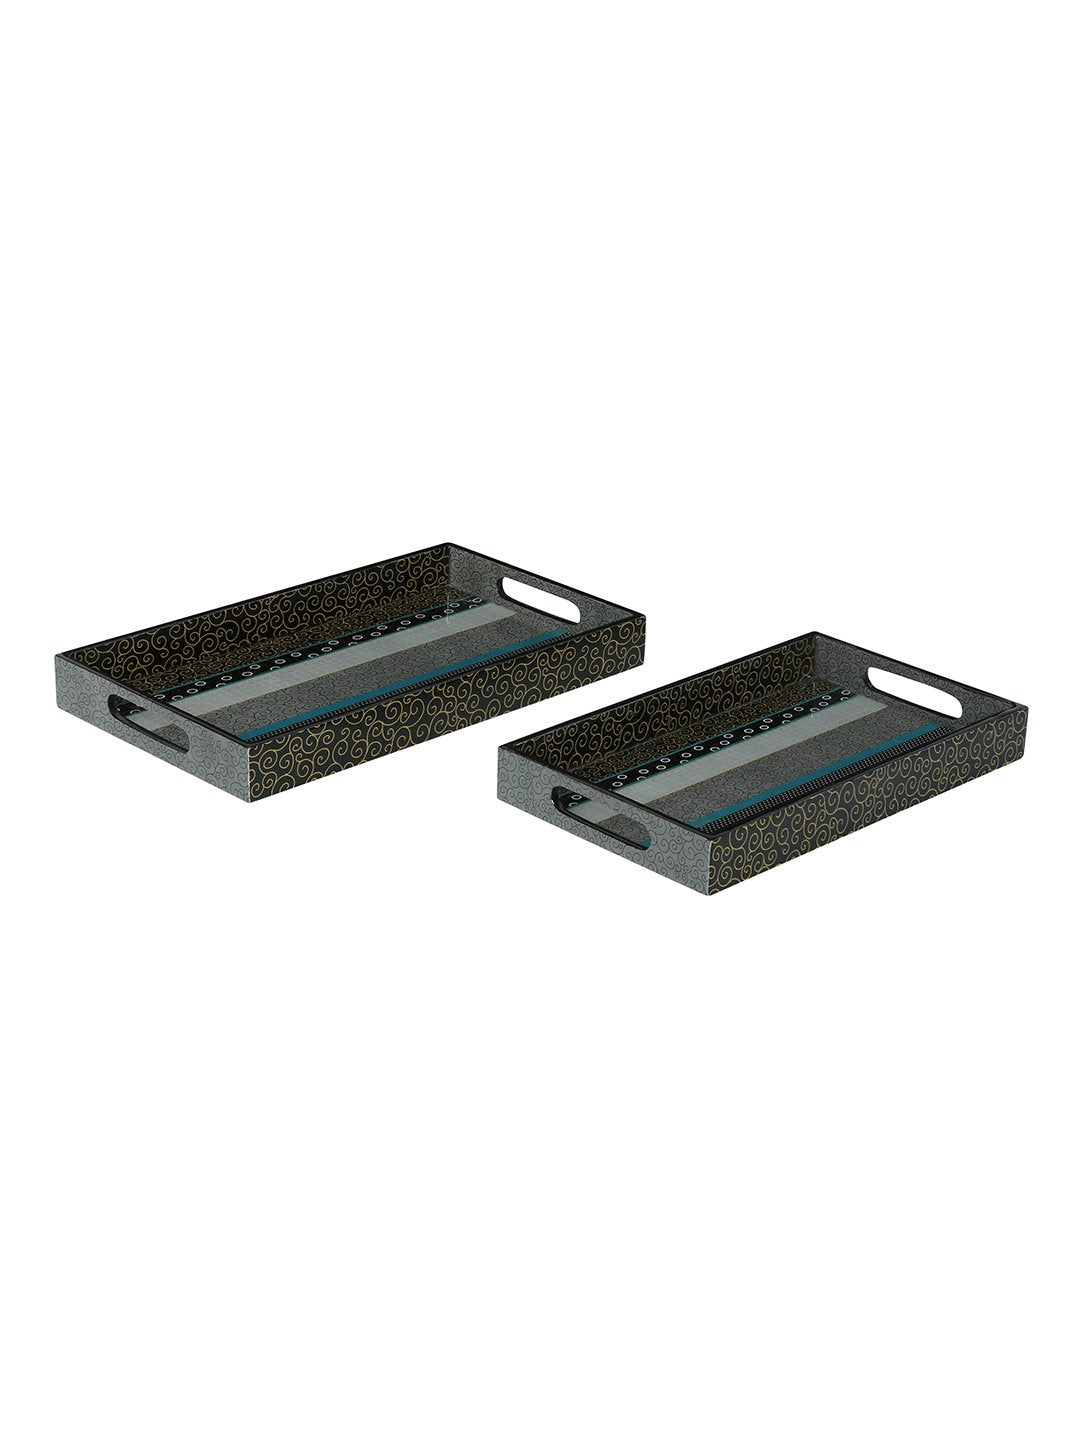 RANGRAGE Contemporary Layers Trays & Mugs Combo (Set of 8)